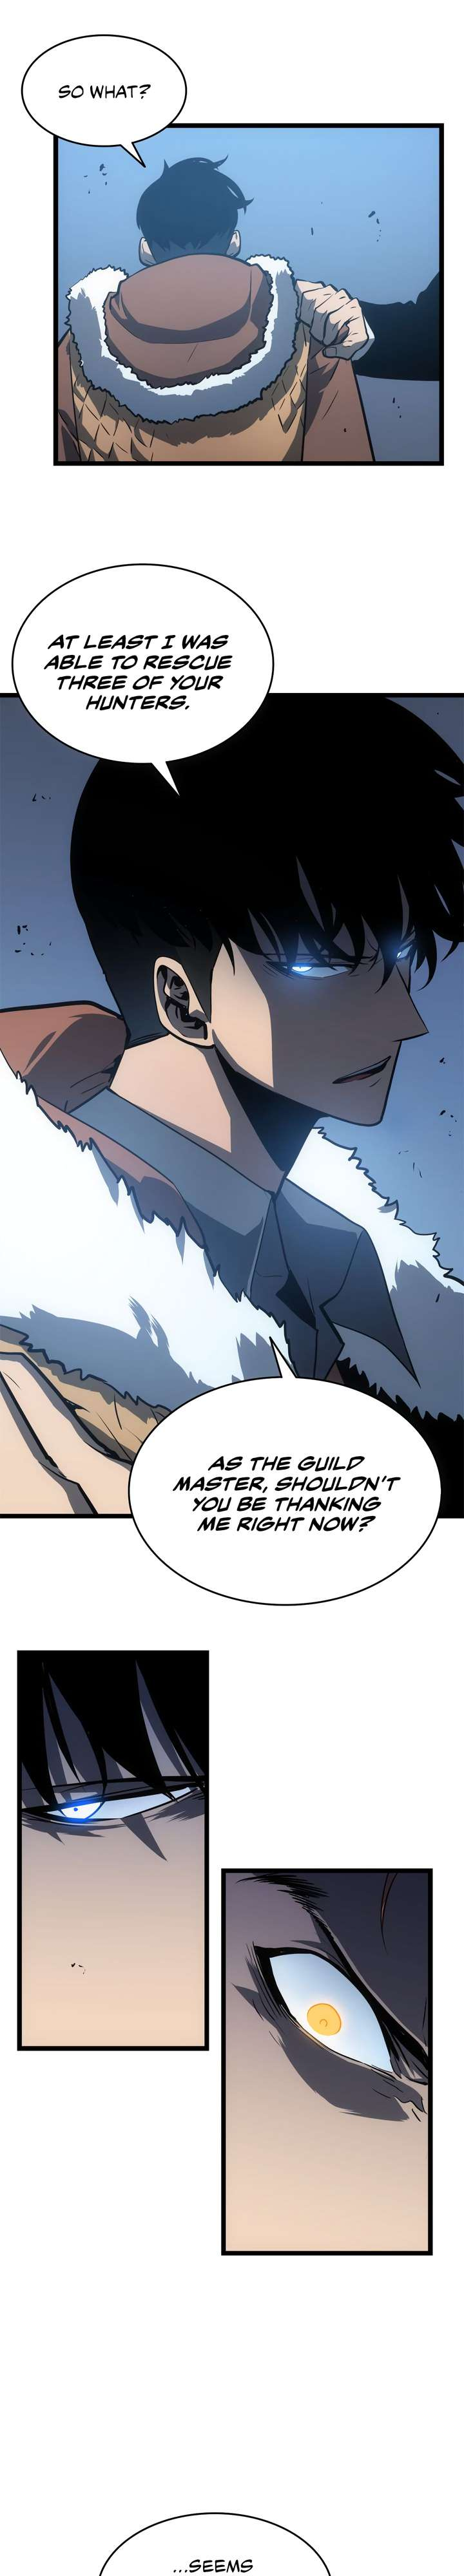 Solo Leveling Chapter 55 Page 9